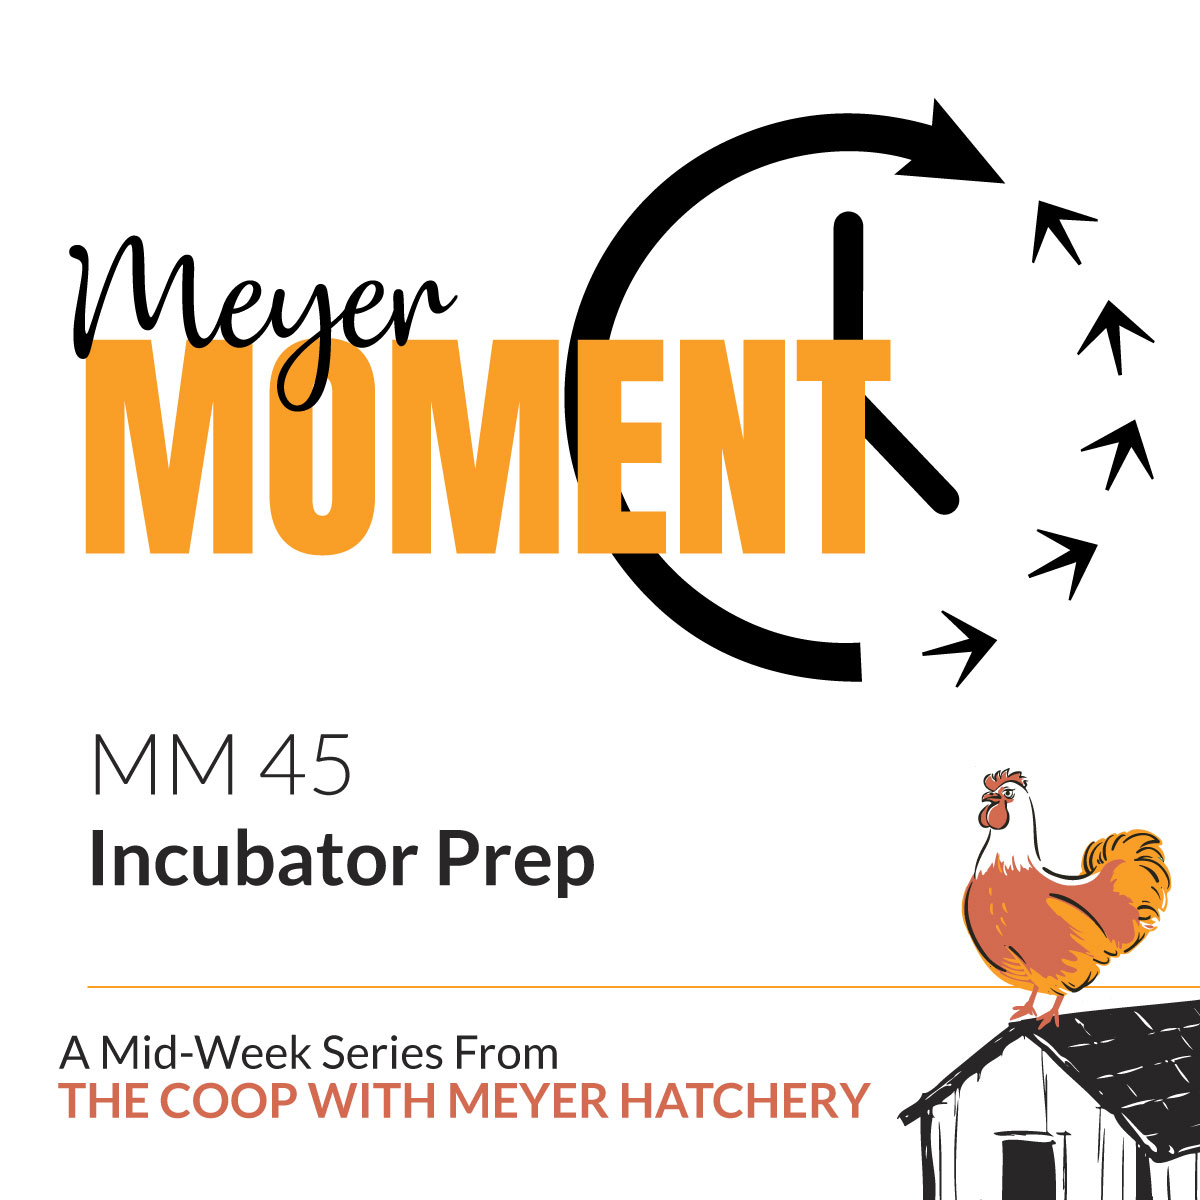 Incubator Prep - The Coop with Meyer Hatchery